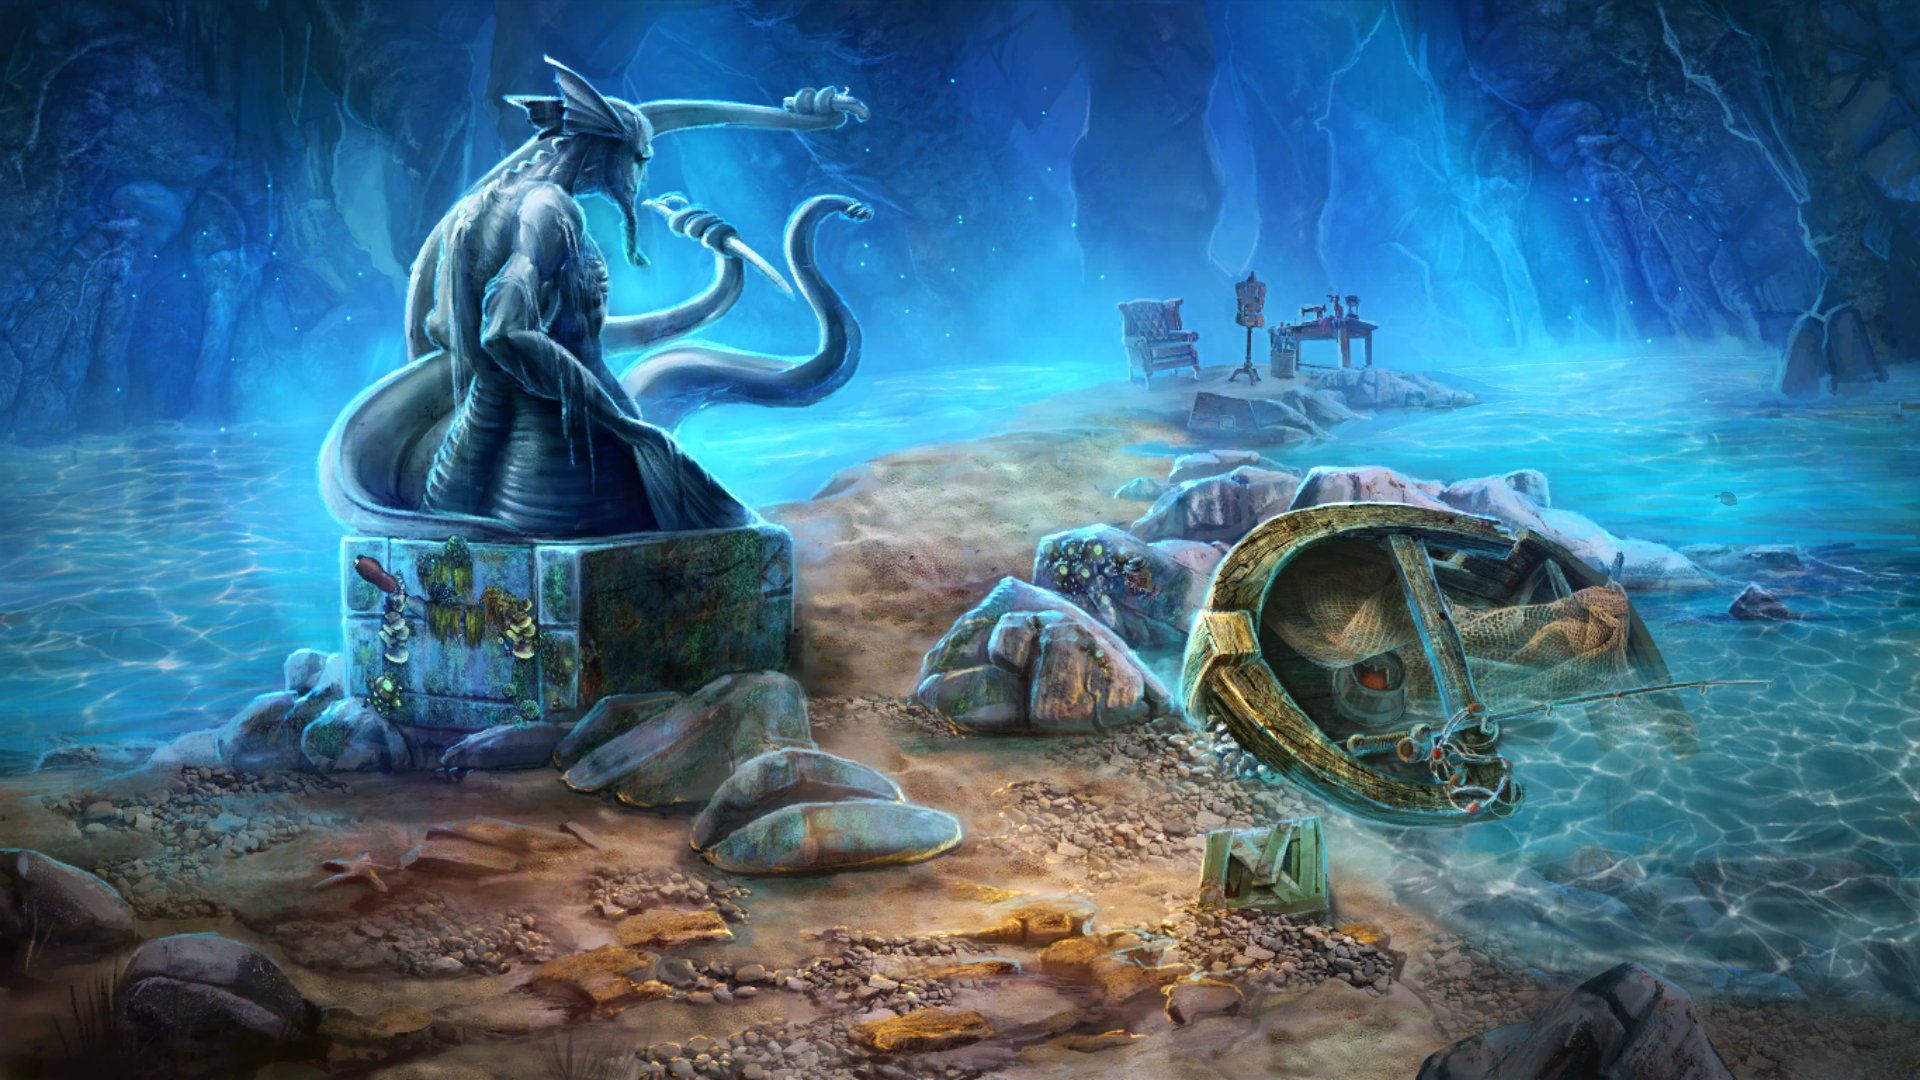 adventure, Artifex Mundi, casual, Hidden Object, Nightmares from the Deep 2, Nightmares from the Deep 2 Review, Nintendo Switch Review, Point & Click, Puzzle, Rating 8/10, Switch Review